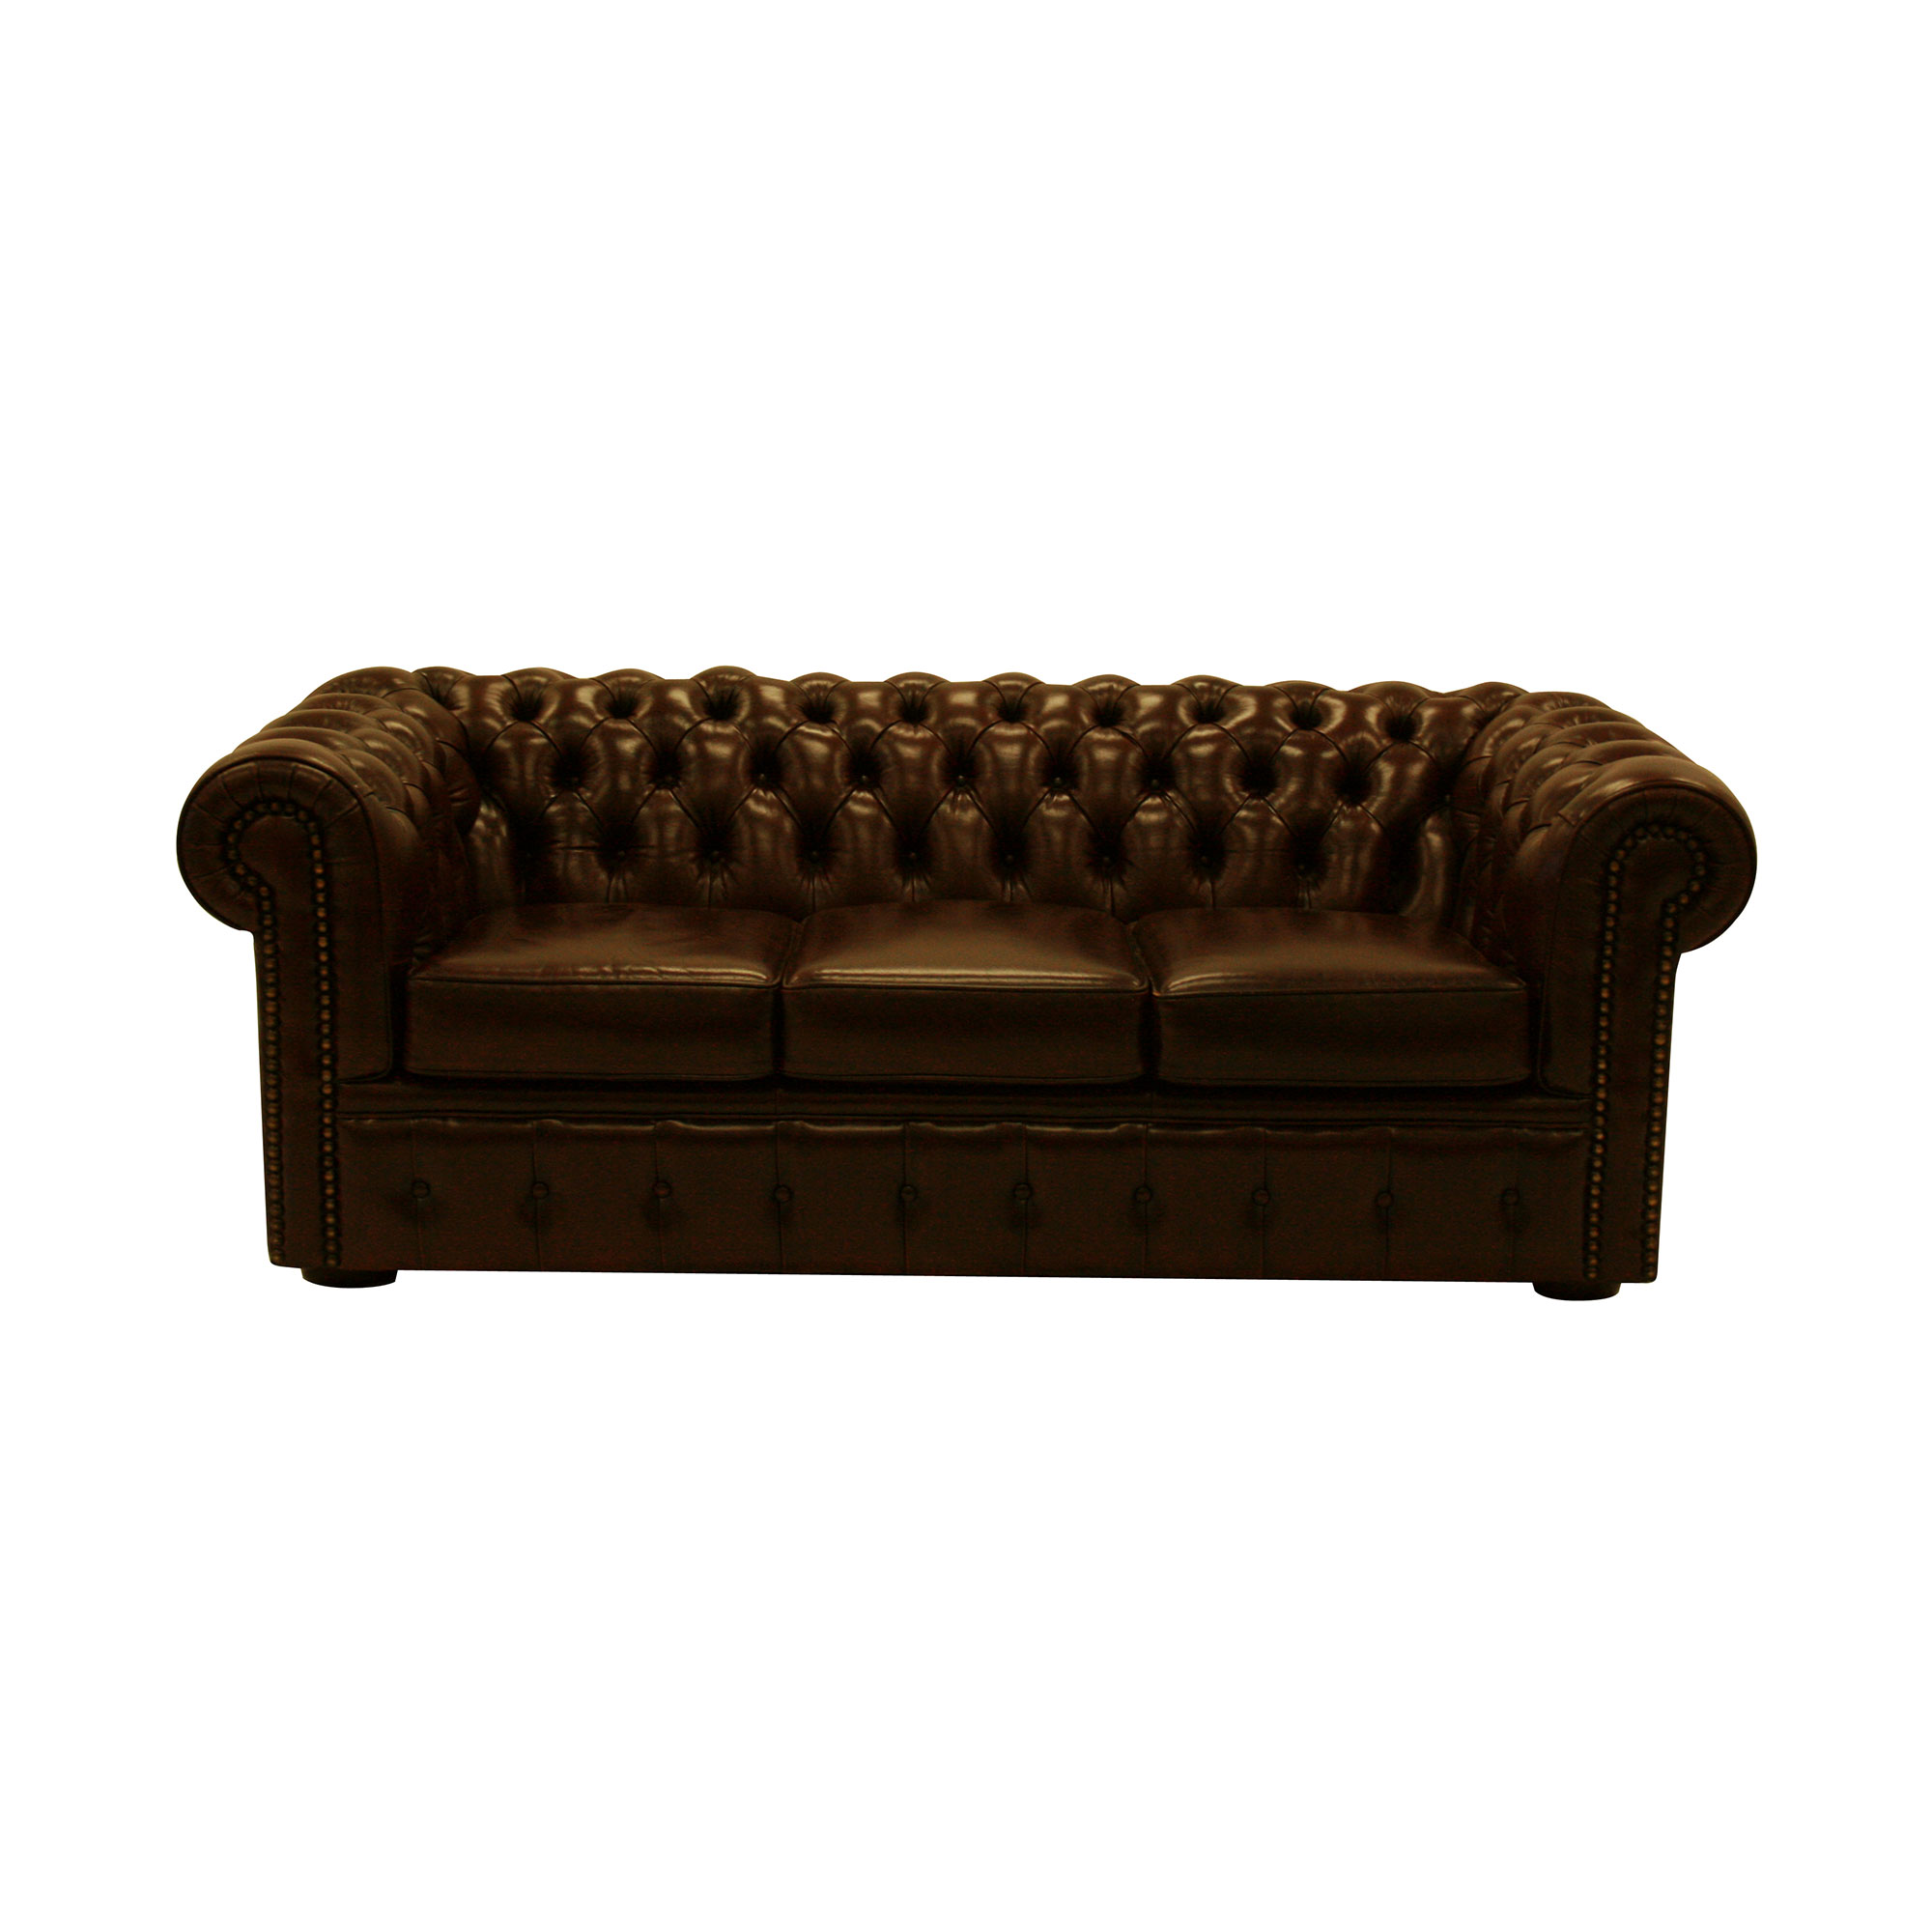 leather sofa world dundee martha stewart covers moran sofas brokeasshome